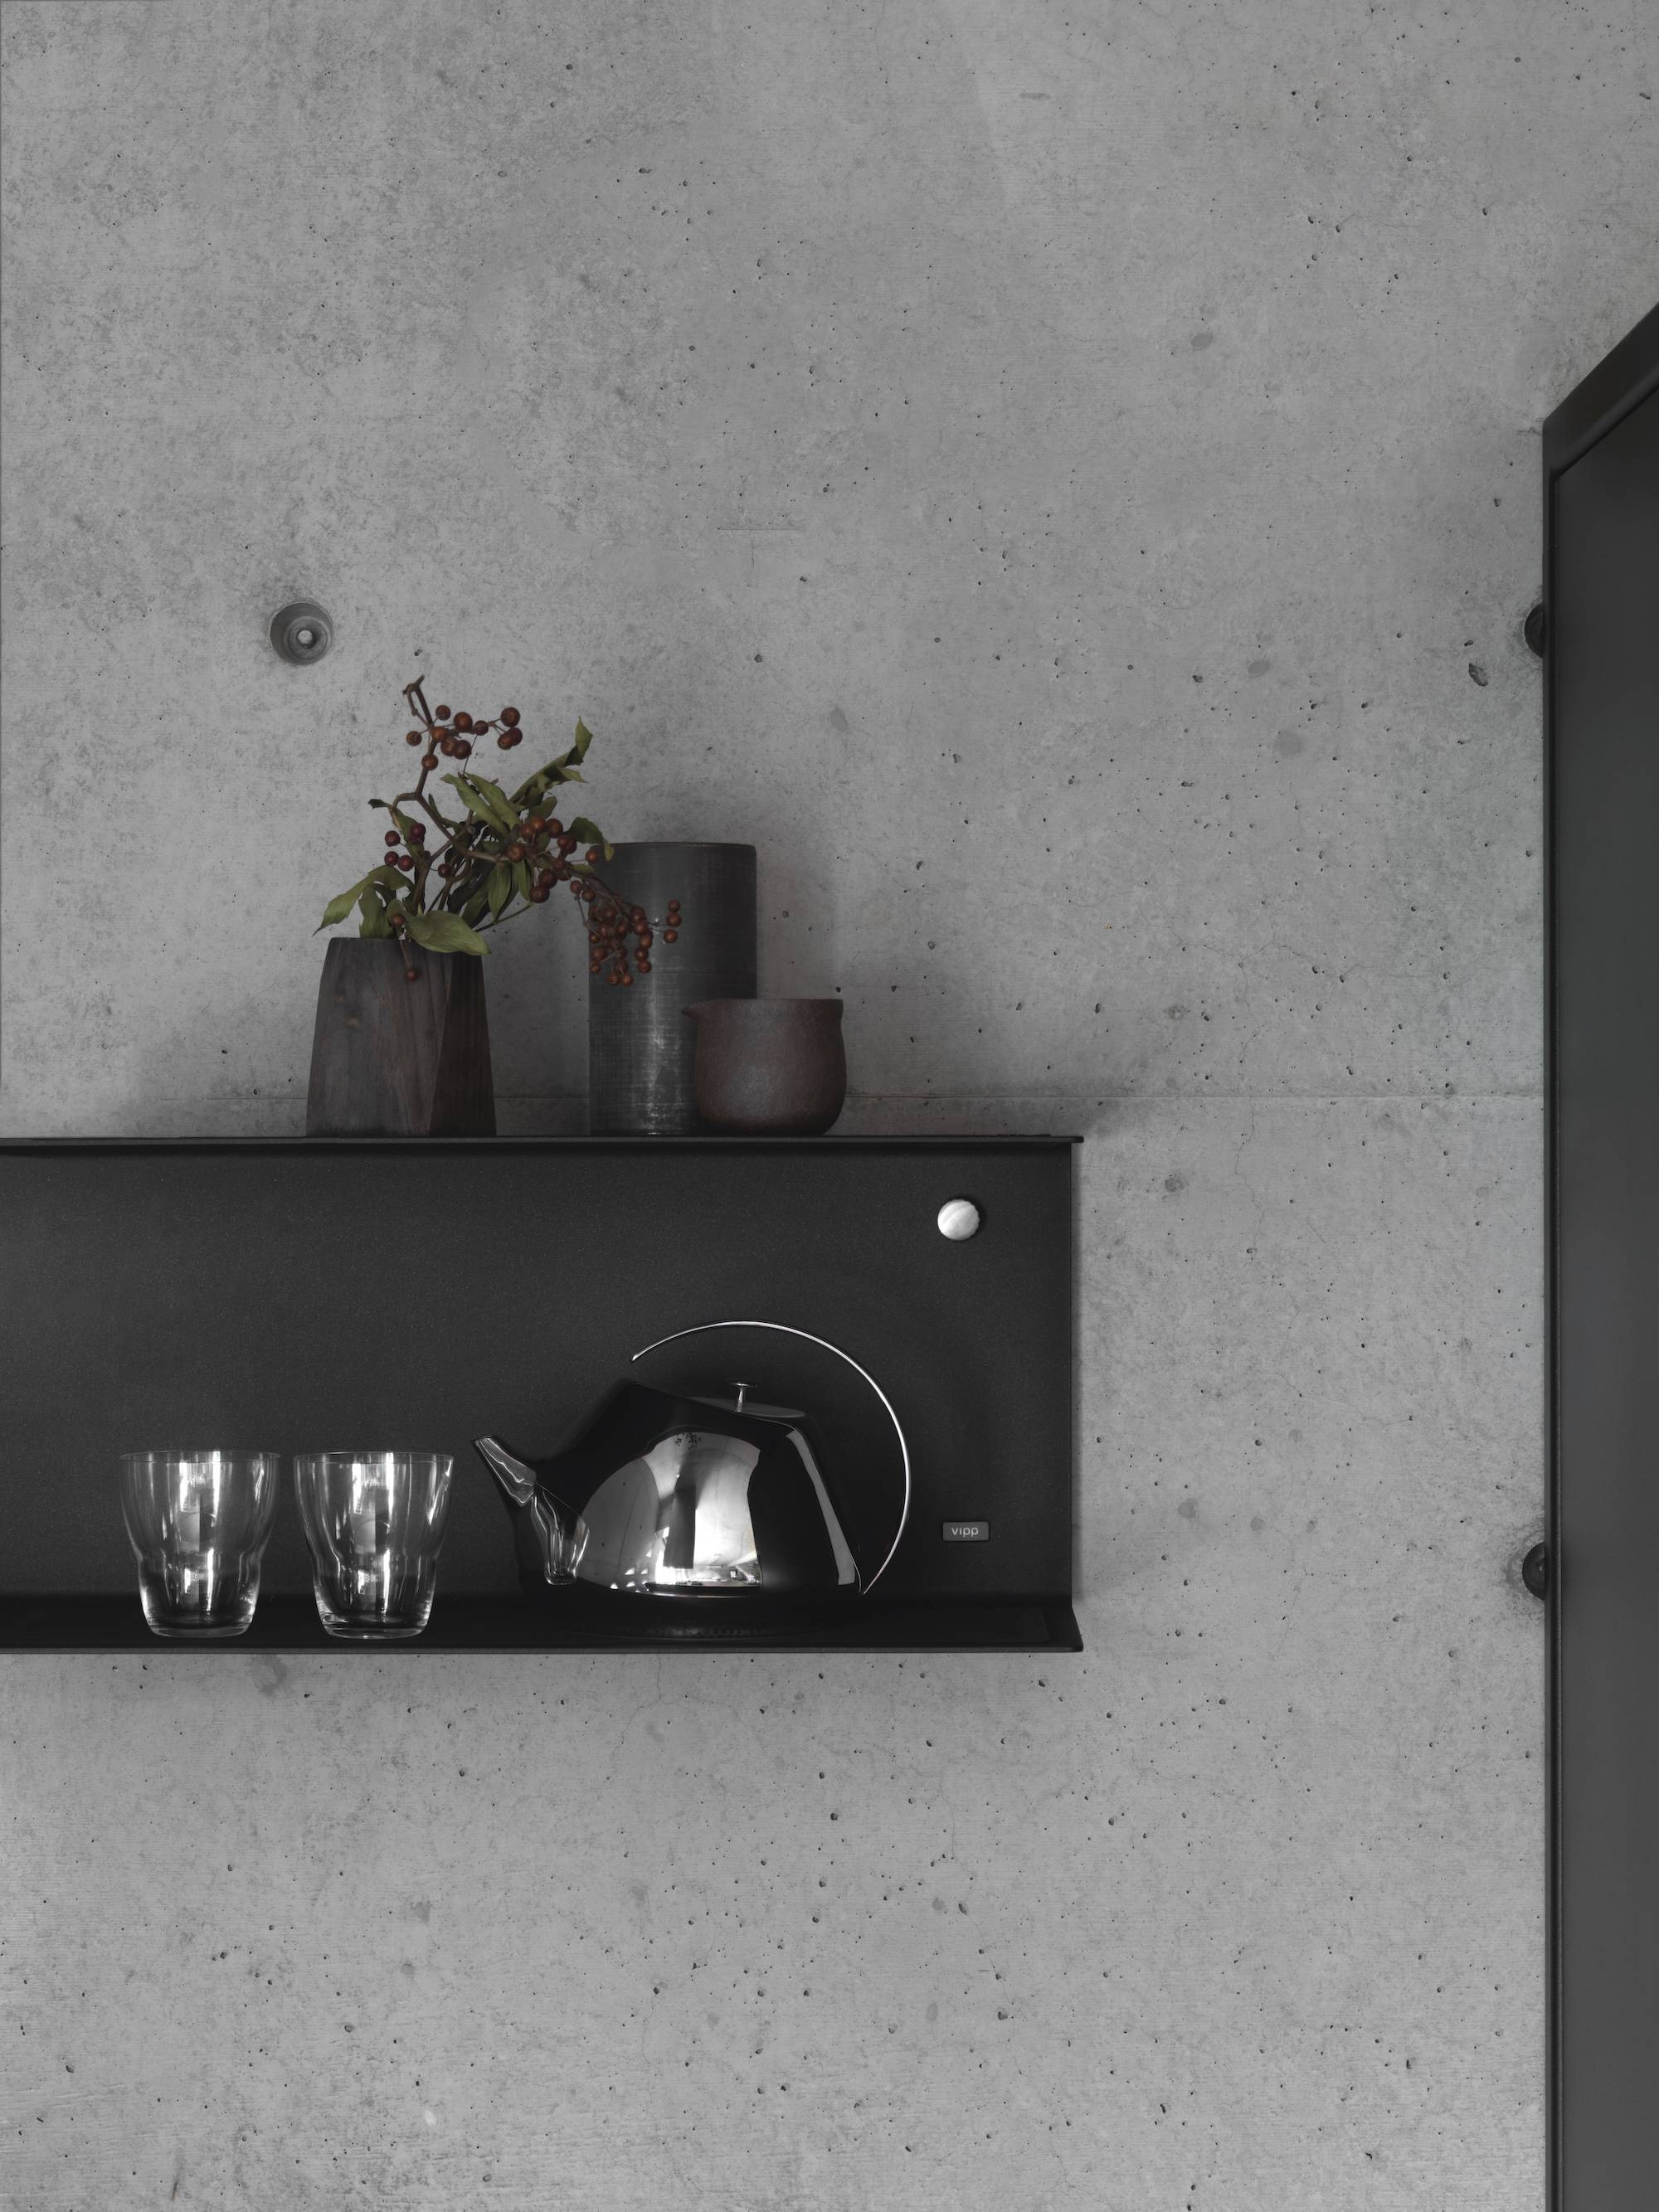 A detail of the wall-mounted Vipp shelf, which can be easily repositioned if necessary.